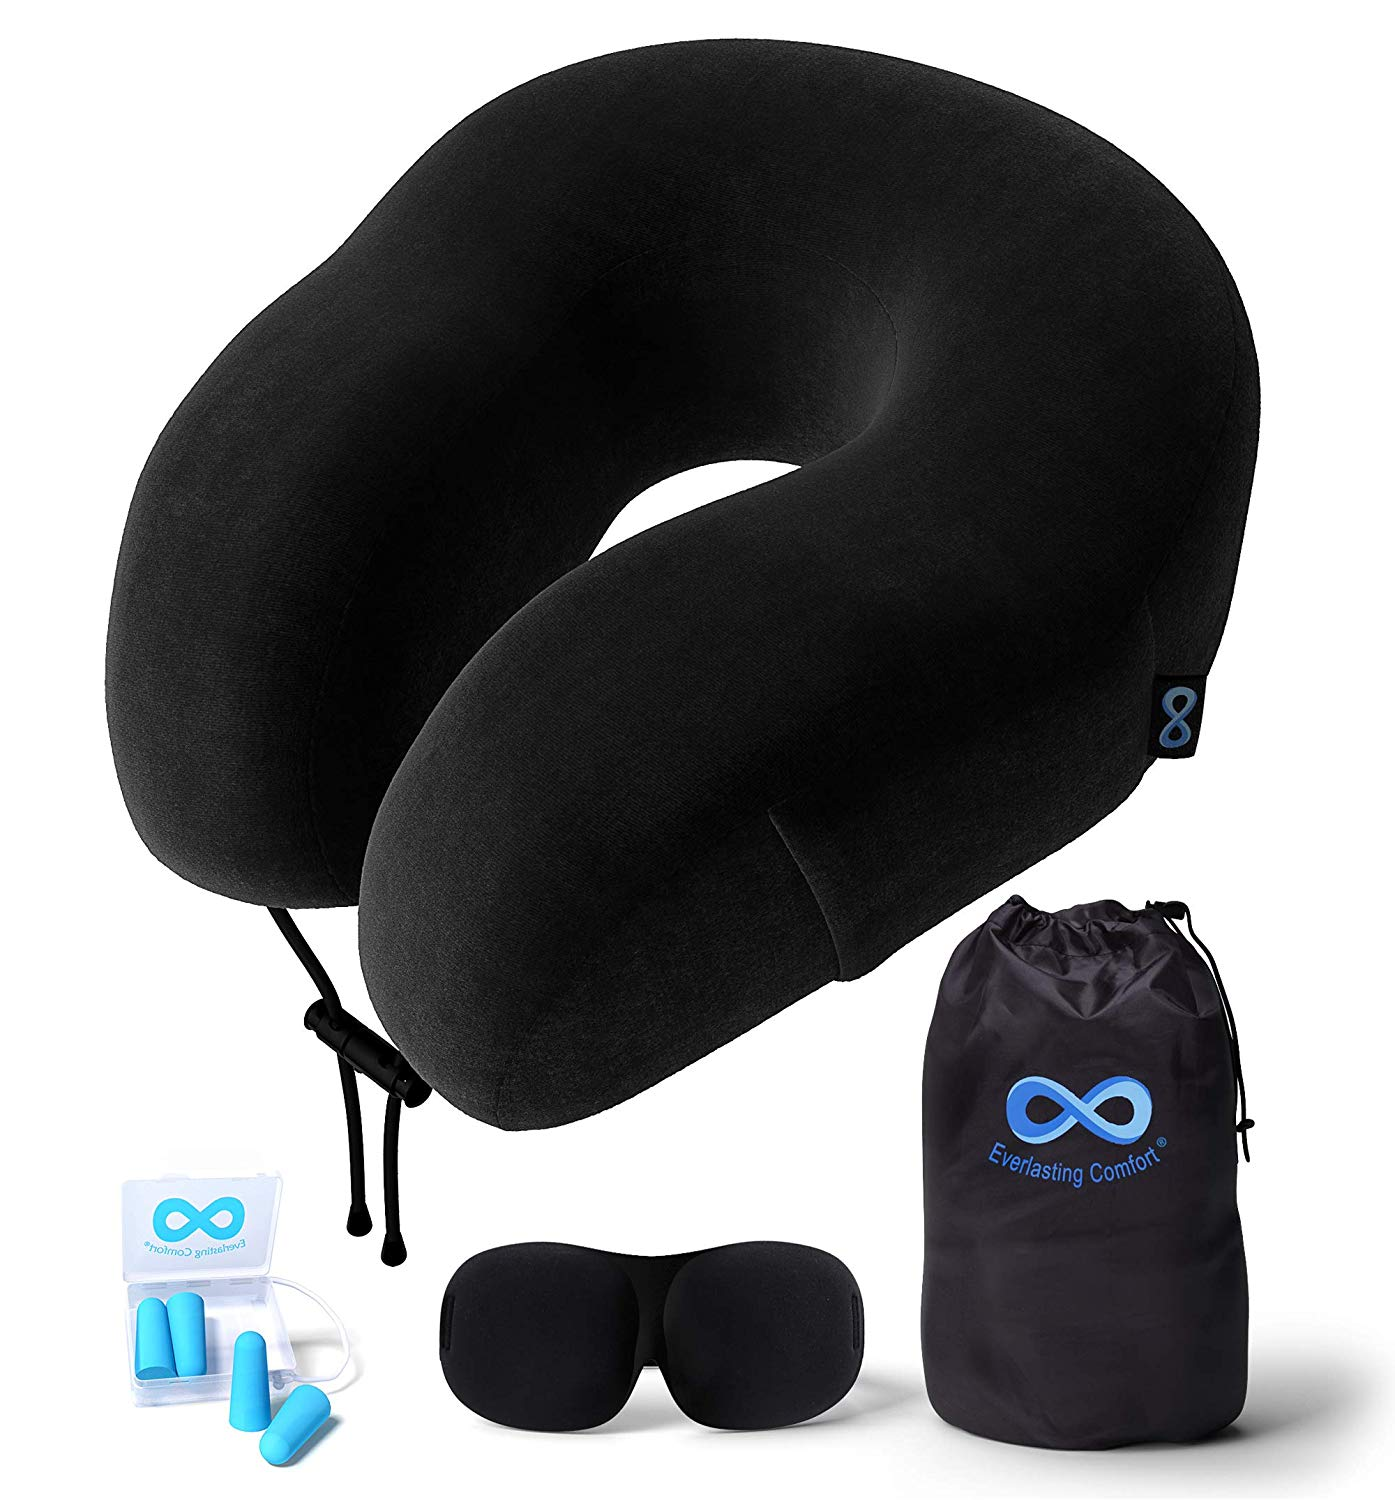 Everlasting Comfort Best Travel Pillow Review by www.snoremagazine.com